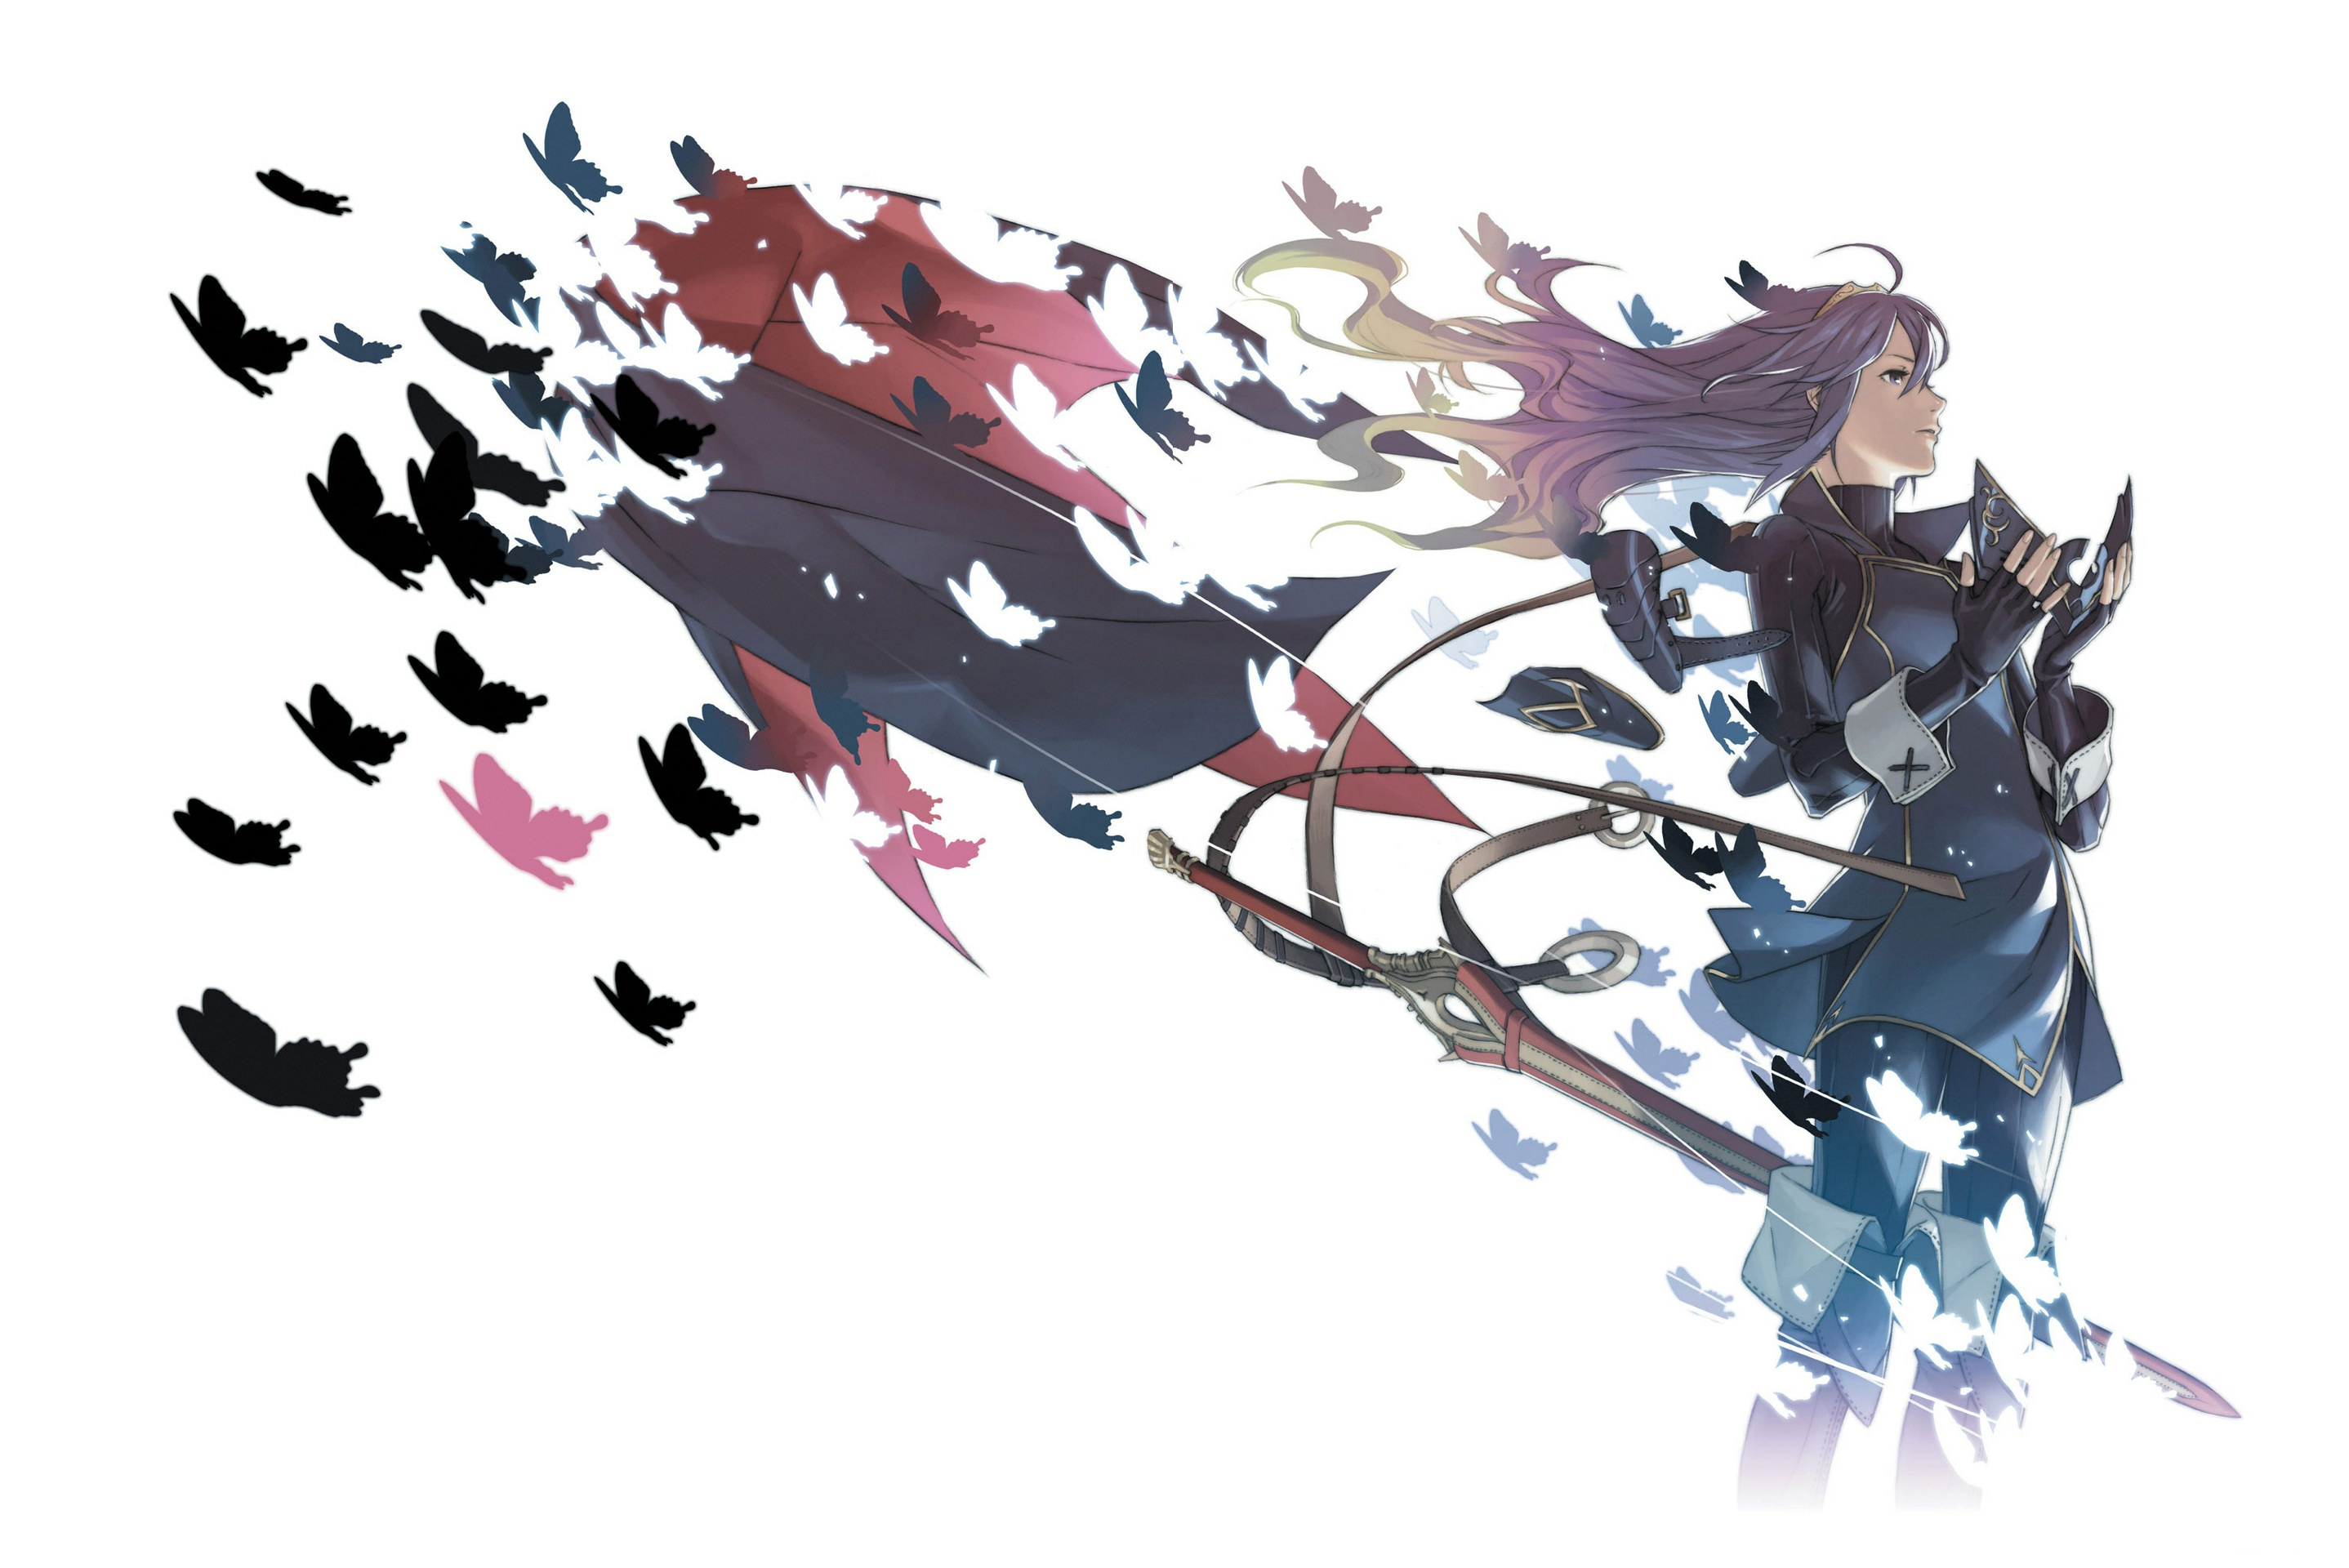 Anyone Know If This Lucina Picture Exists Anywhere Uncropped